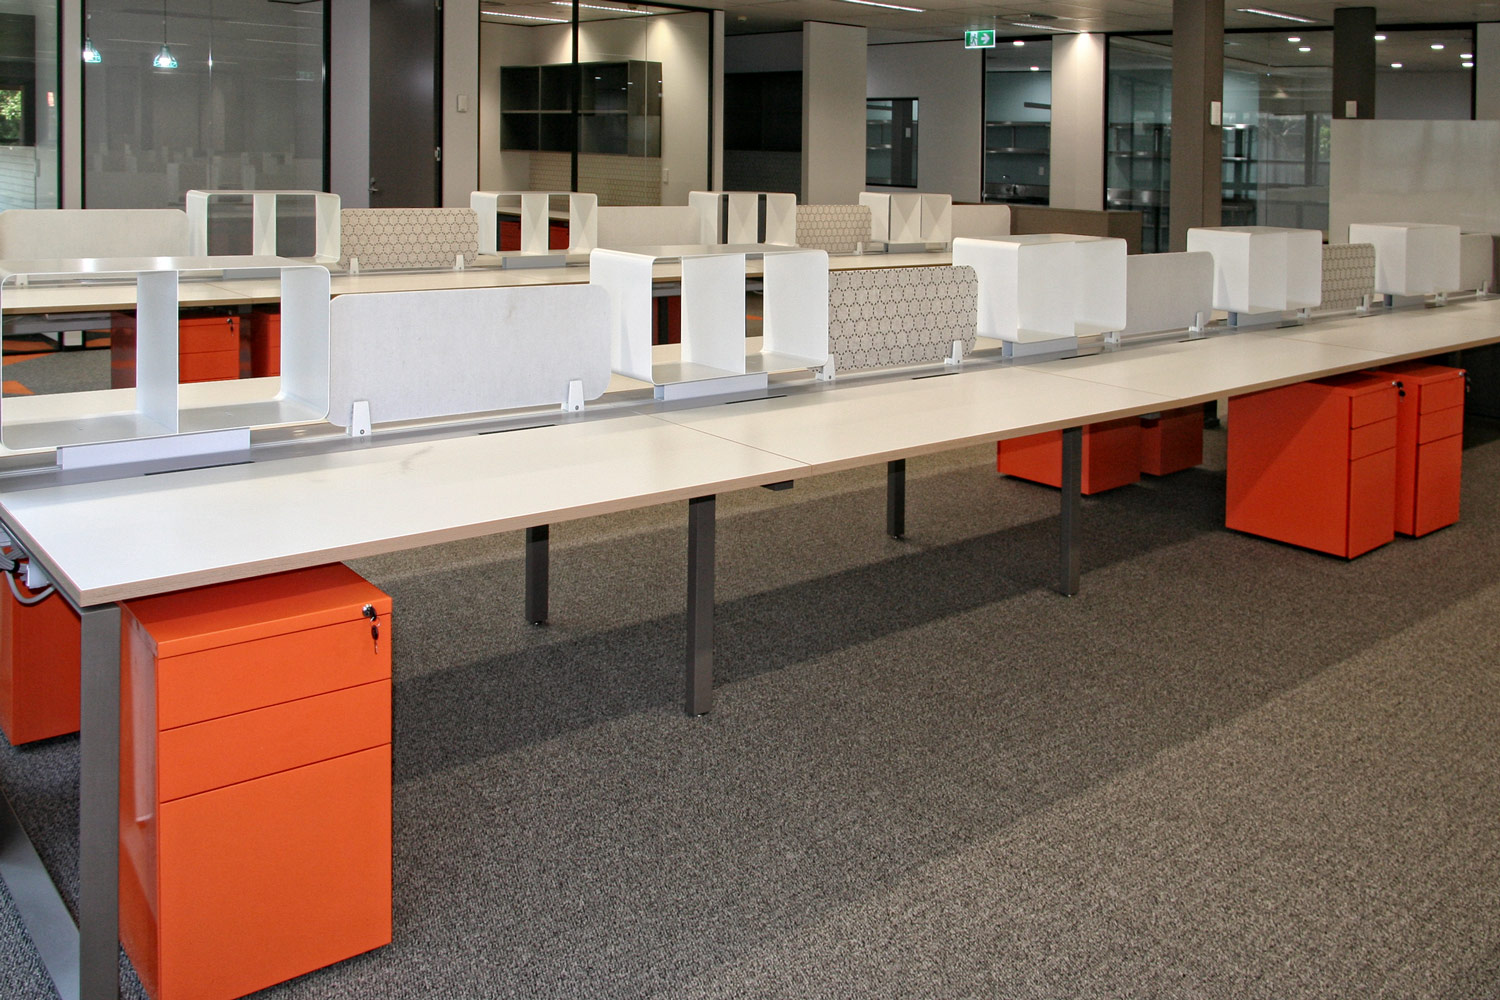 Miki workstations and Easy mobile pedestals